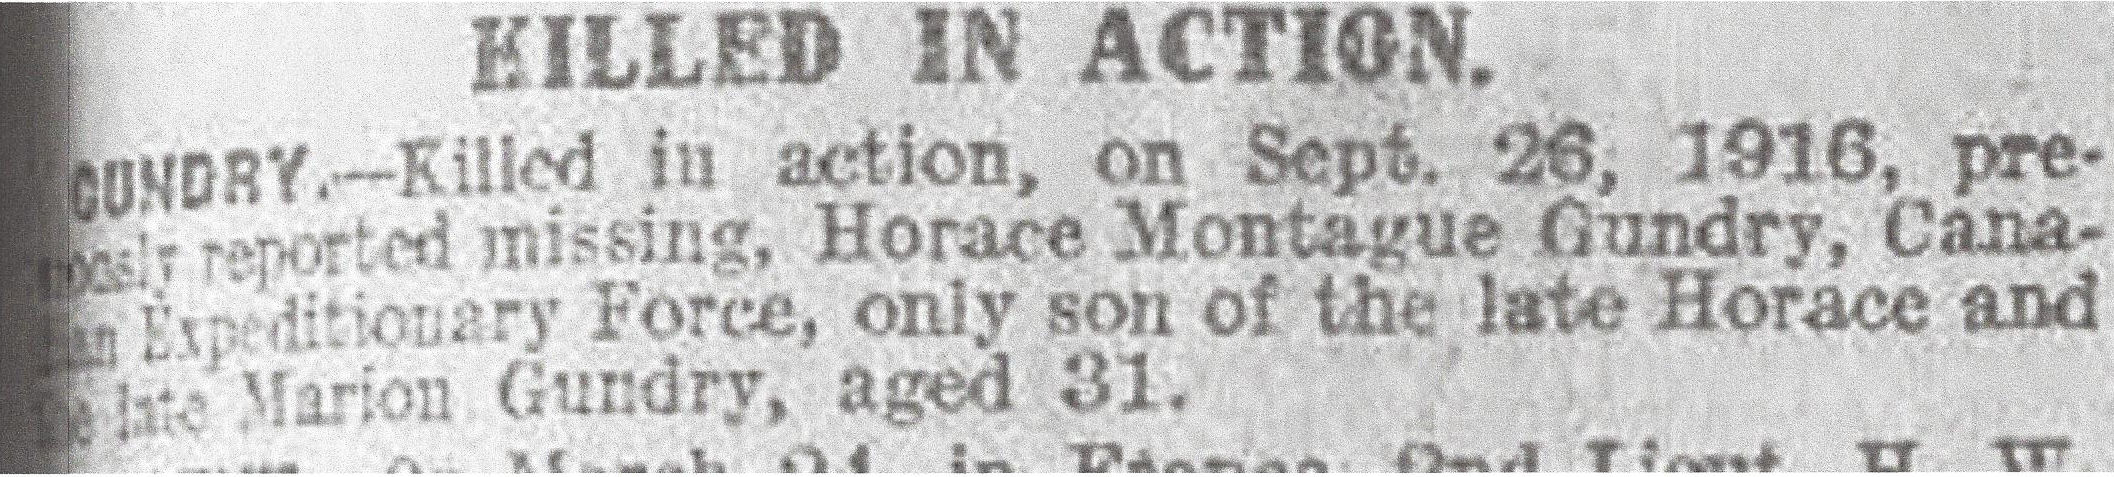 Newspaper Clipping– Newspaper clipping from Daily Telegraph of March 29, 1917. Image taken from web address of http://www.telegraph.co.uk/news/ww1-archive/12214419/Daily-Telegraph-March-29-1917.html